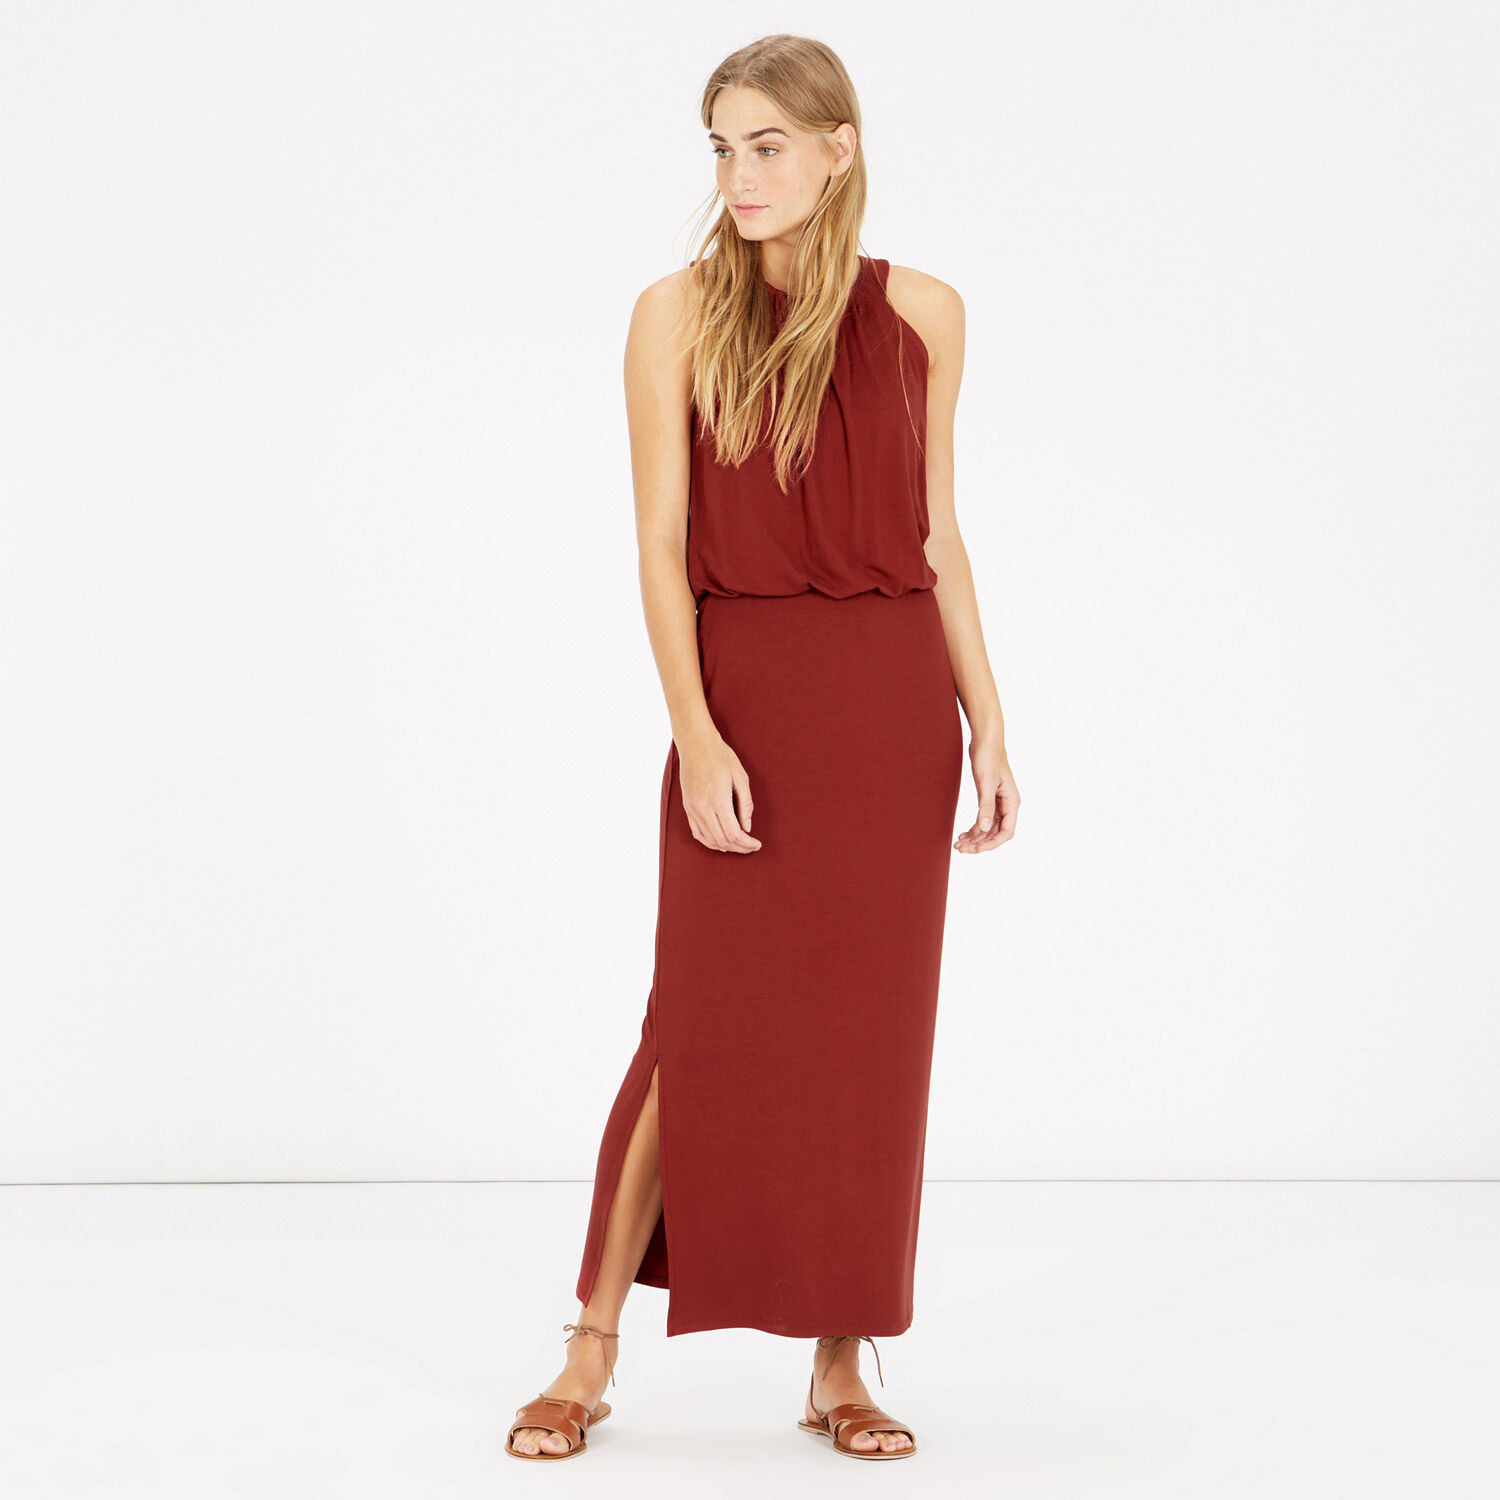 Warehouse, HIGH NECK MIDI DRESS Brown 1